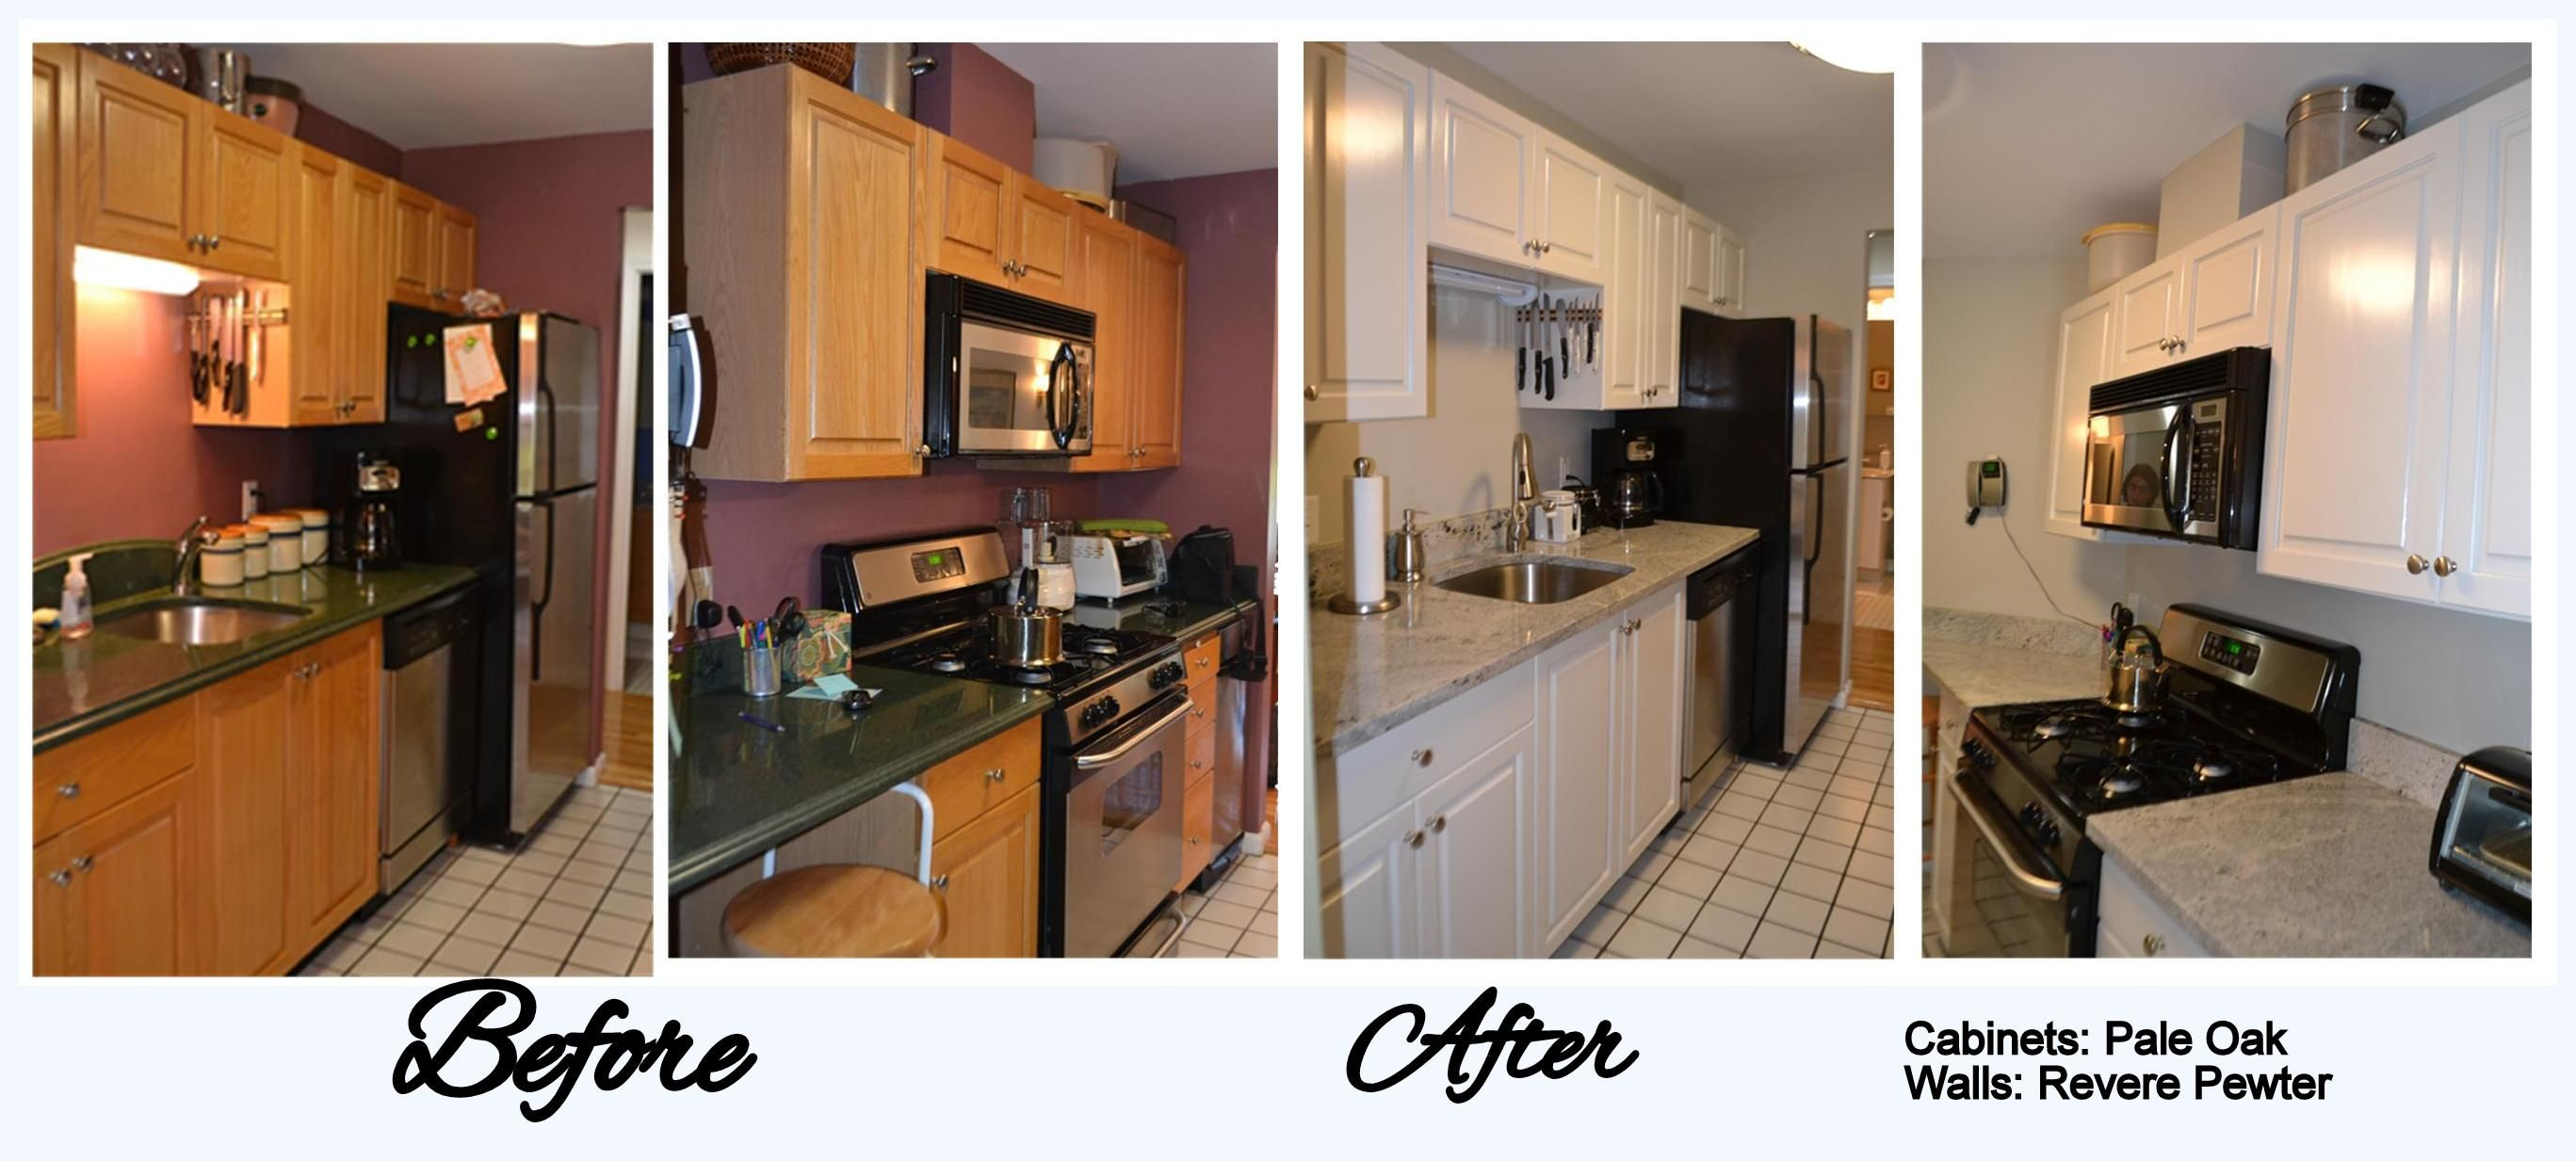 New Kitchen Cabinets Before After Kitchen Cabinet Refacing Before And After Photos  Google Search